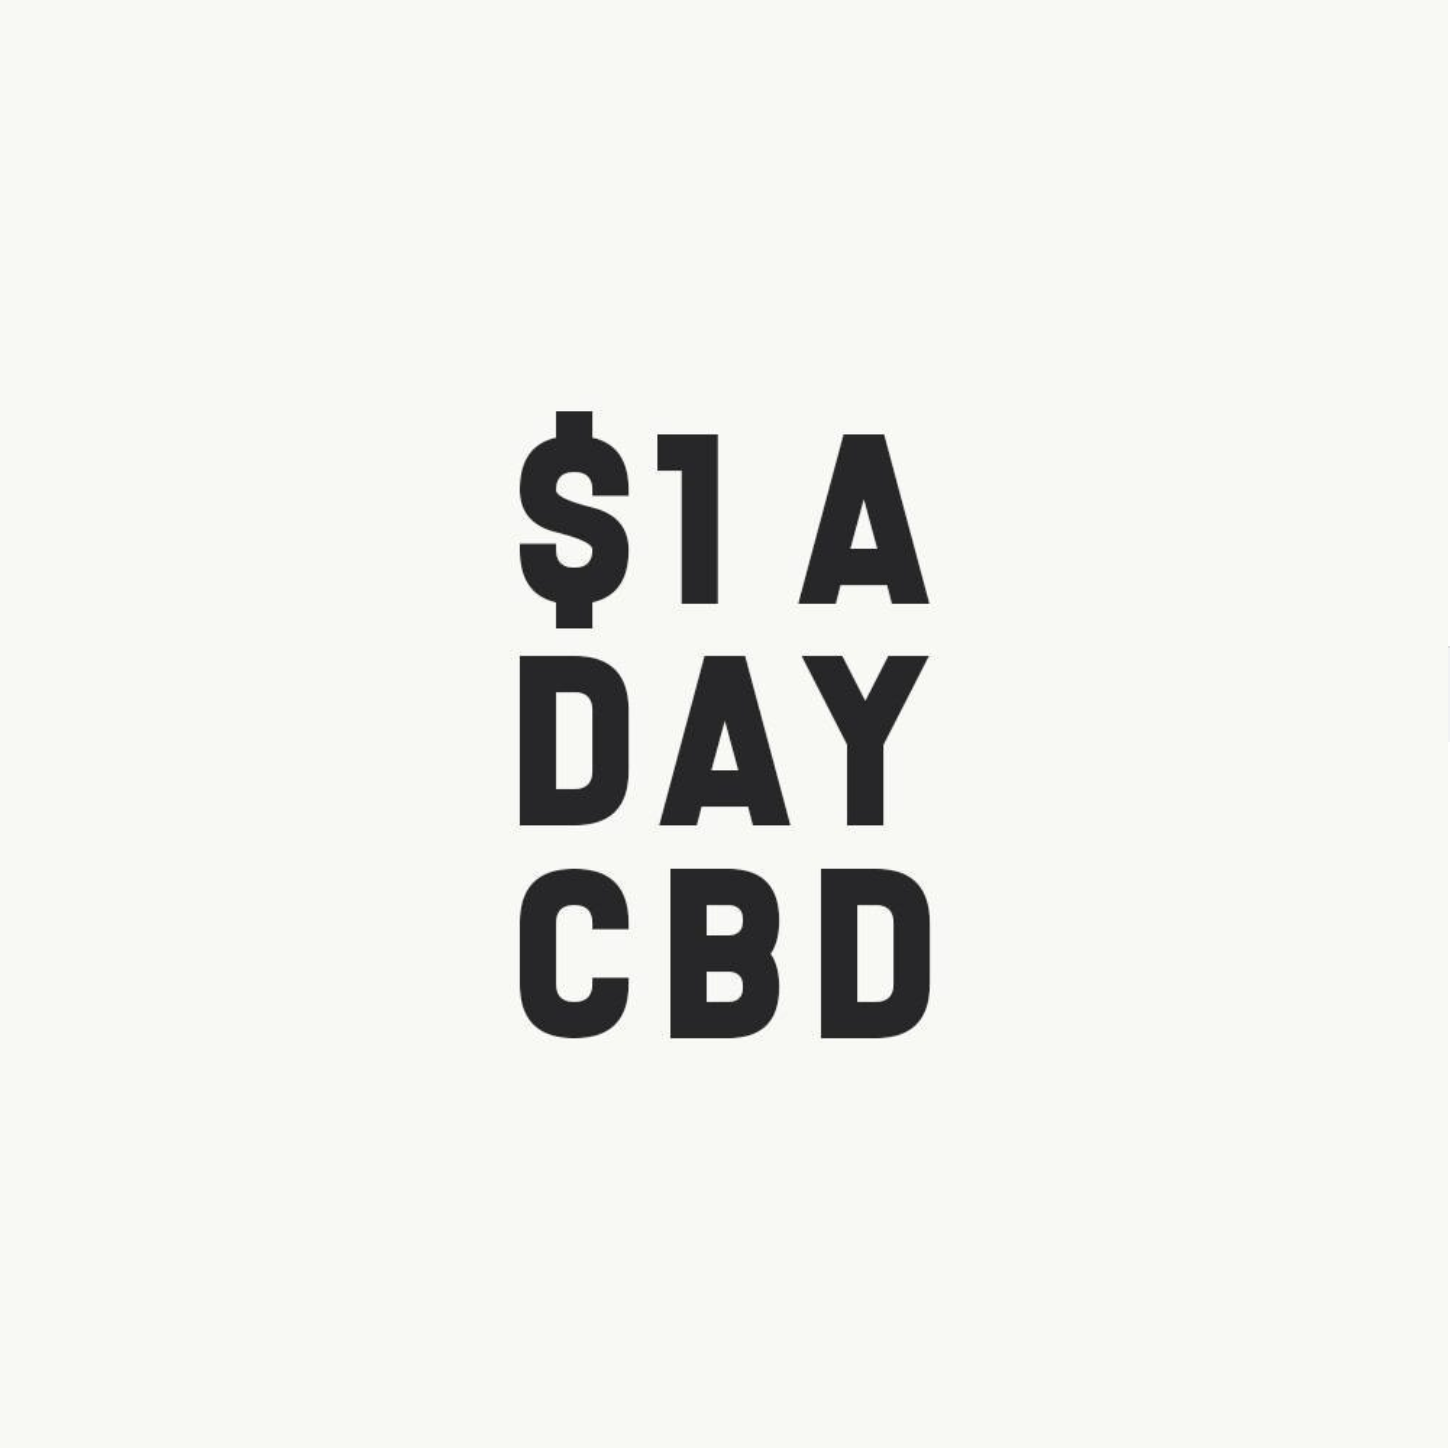 Dollar A Day CBD coupons